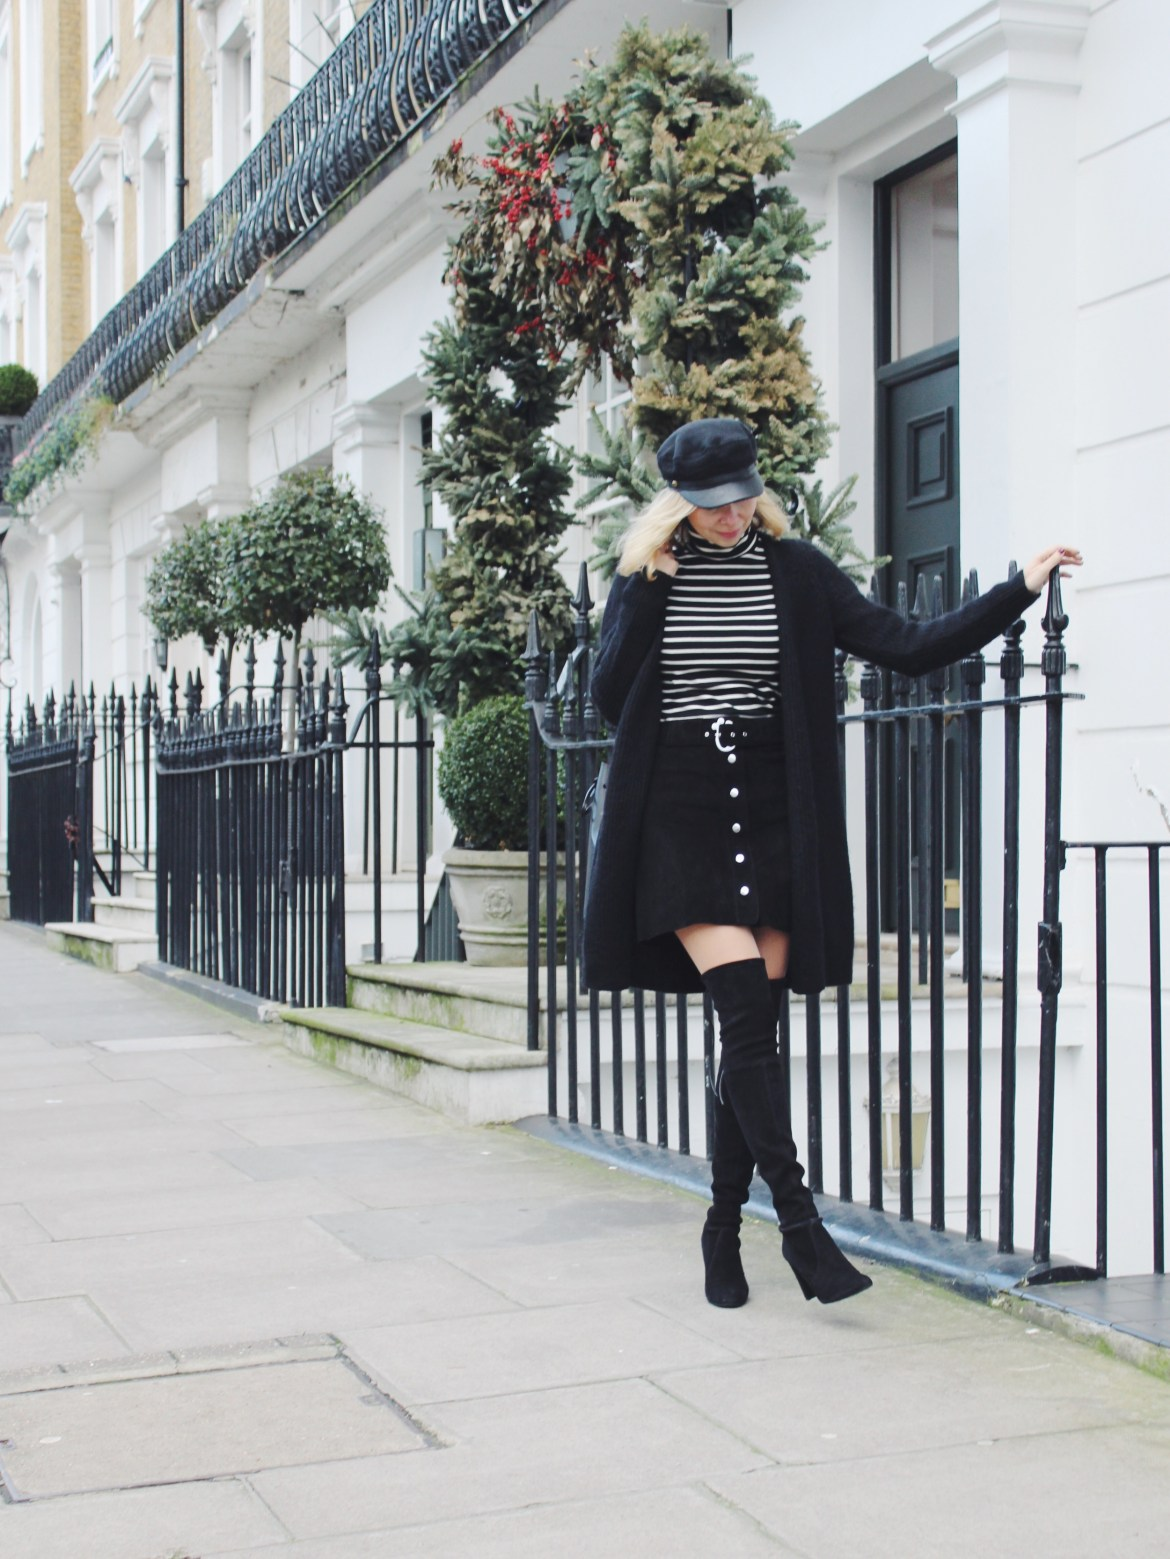 Arianna Trapani is wearing stripe top from Le Petit Bateau, black suede skirt from Zara, black knitted cardigan from Cos, Highland boots from Stuart Weitzman, Black bucket bag from Mansur Gavriel, Bake boy hat from Eugene Kim.